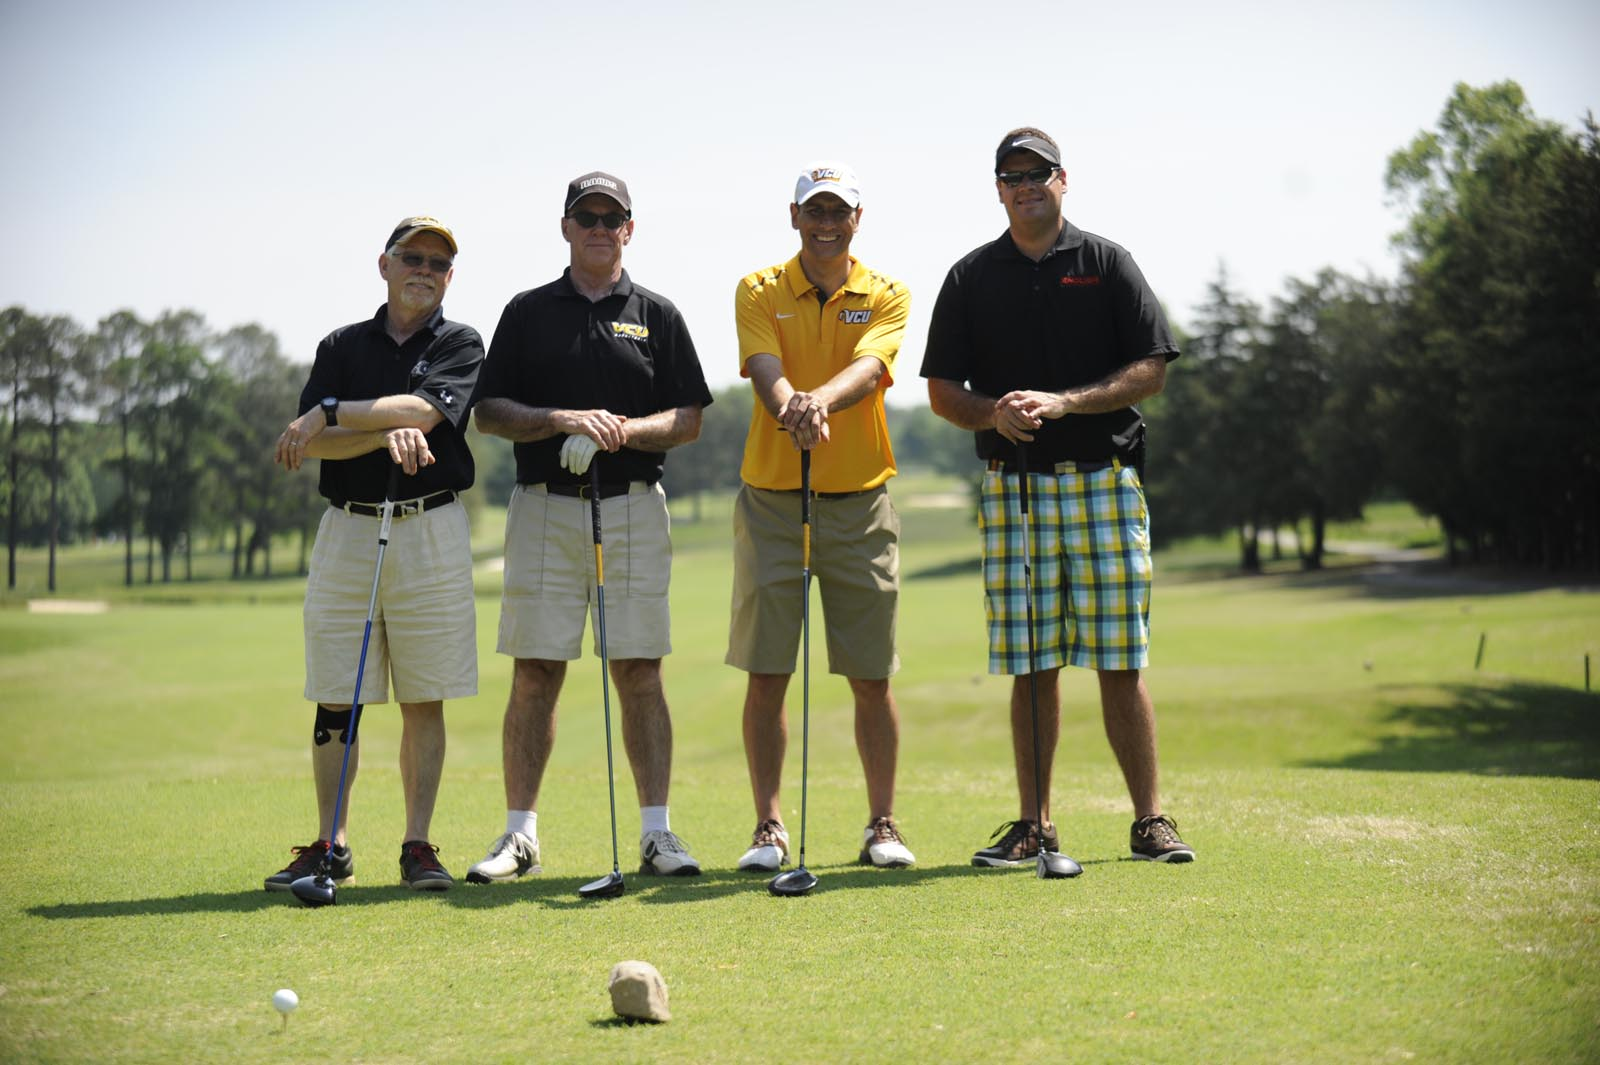 Four playing golf